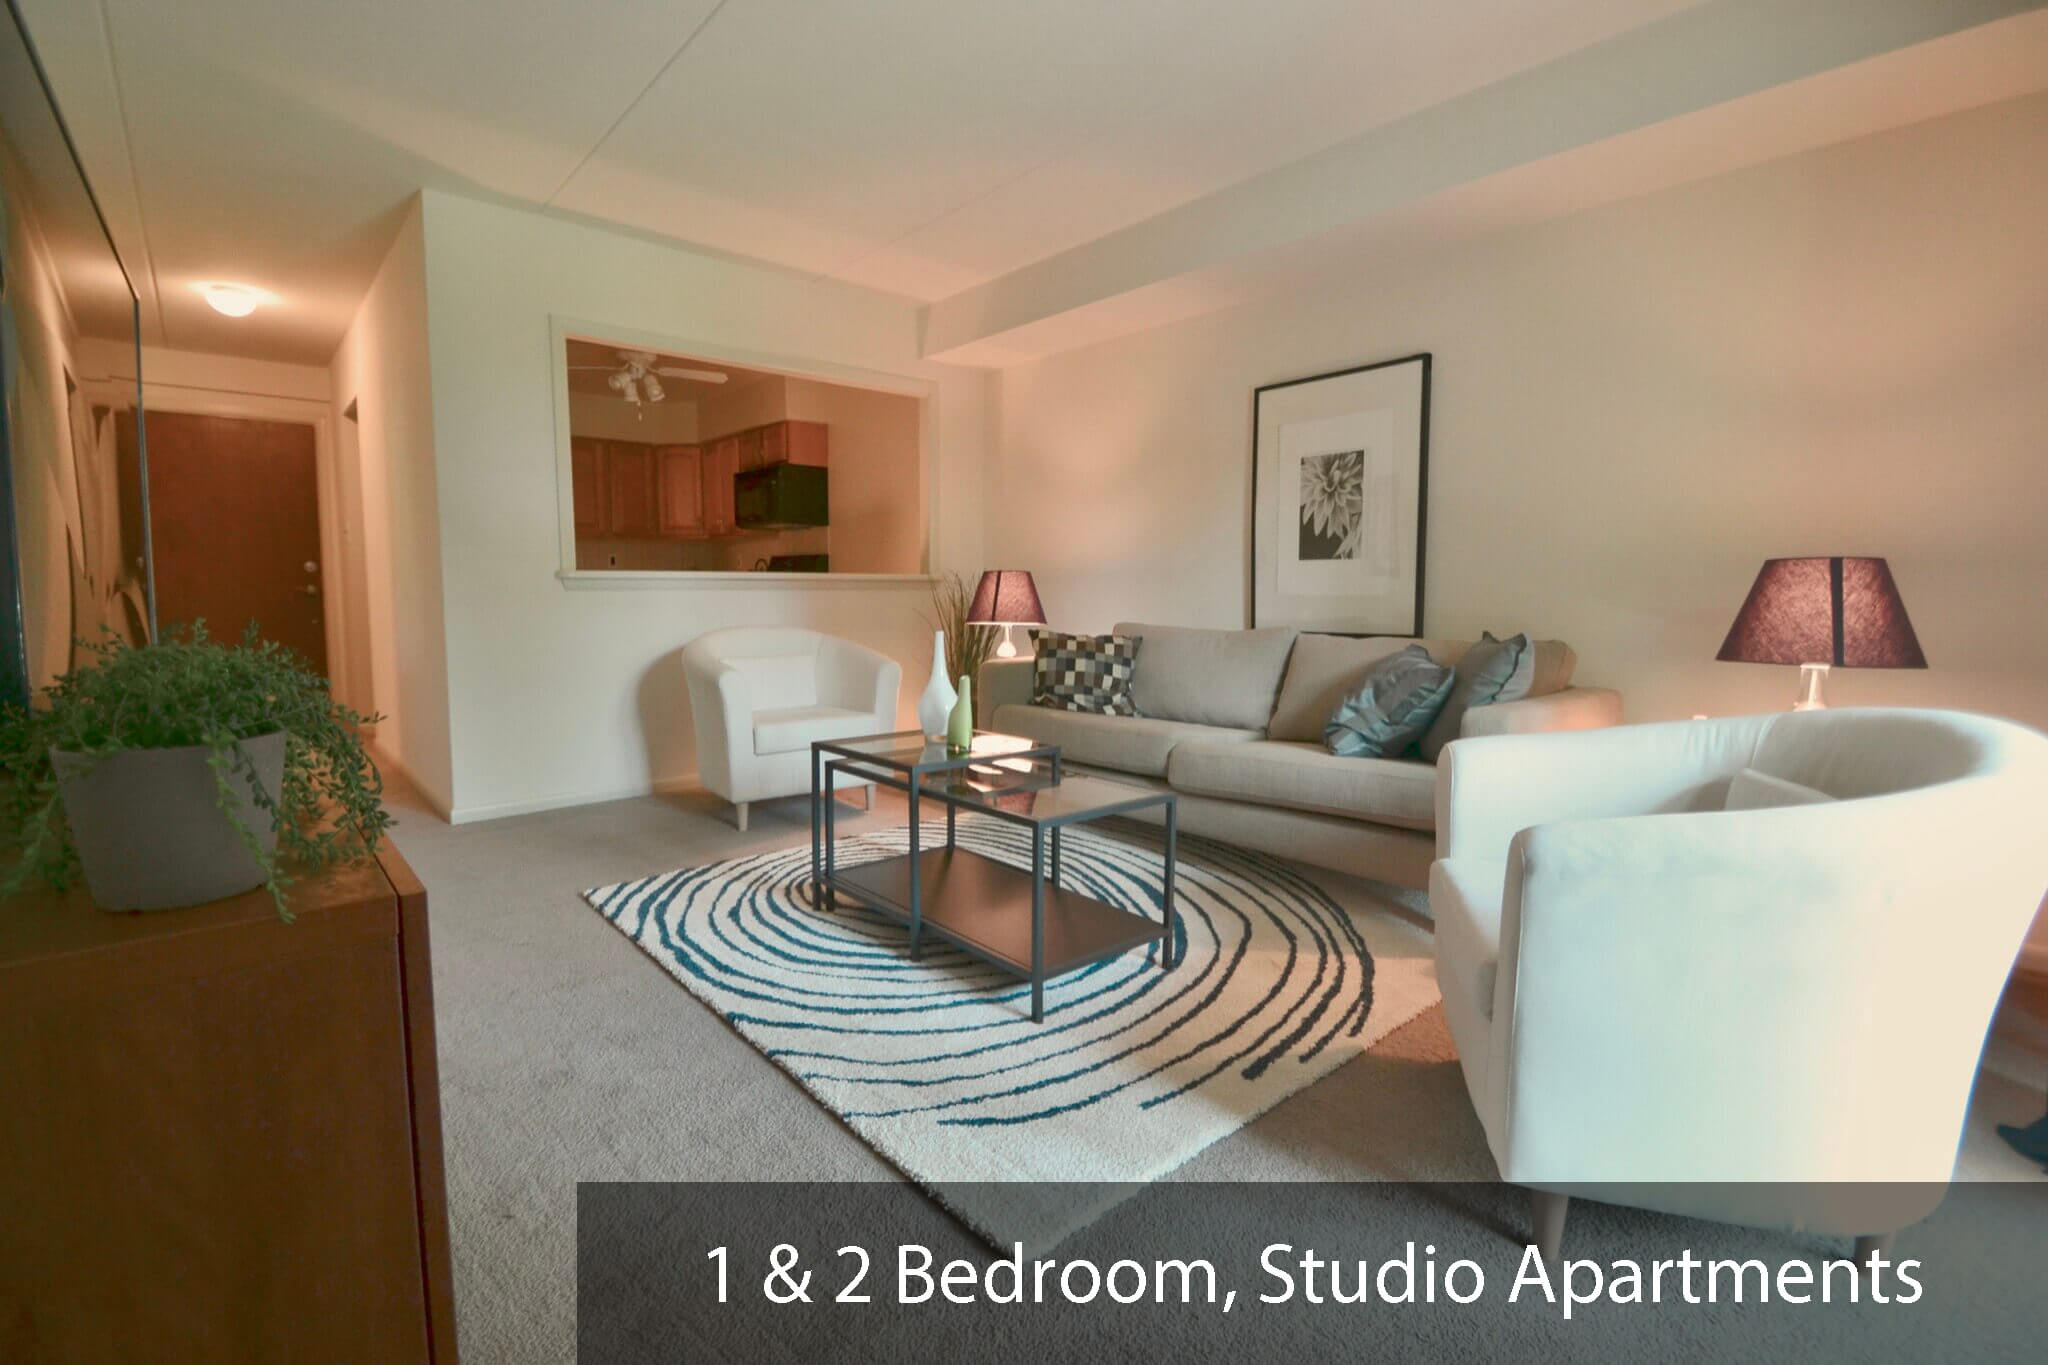 Spacious living area in one bedroom, two bedroom, and studio/efficiency apartments